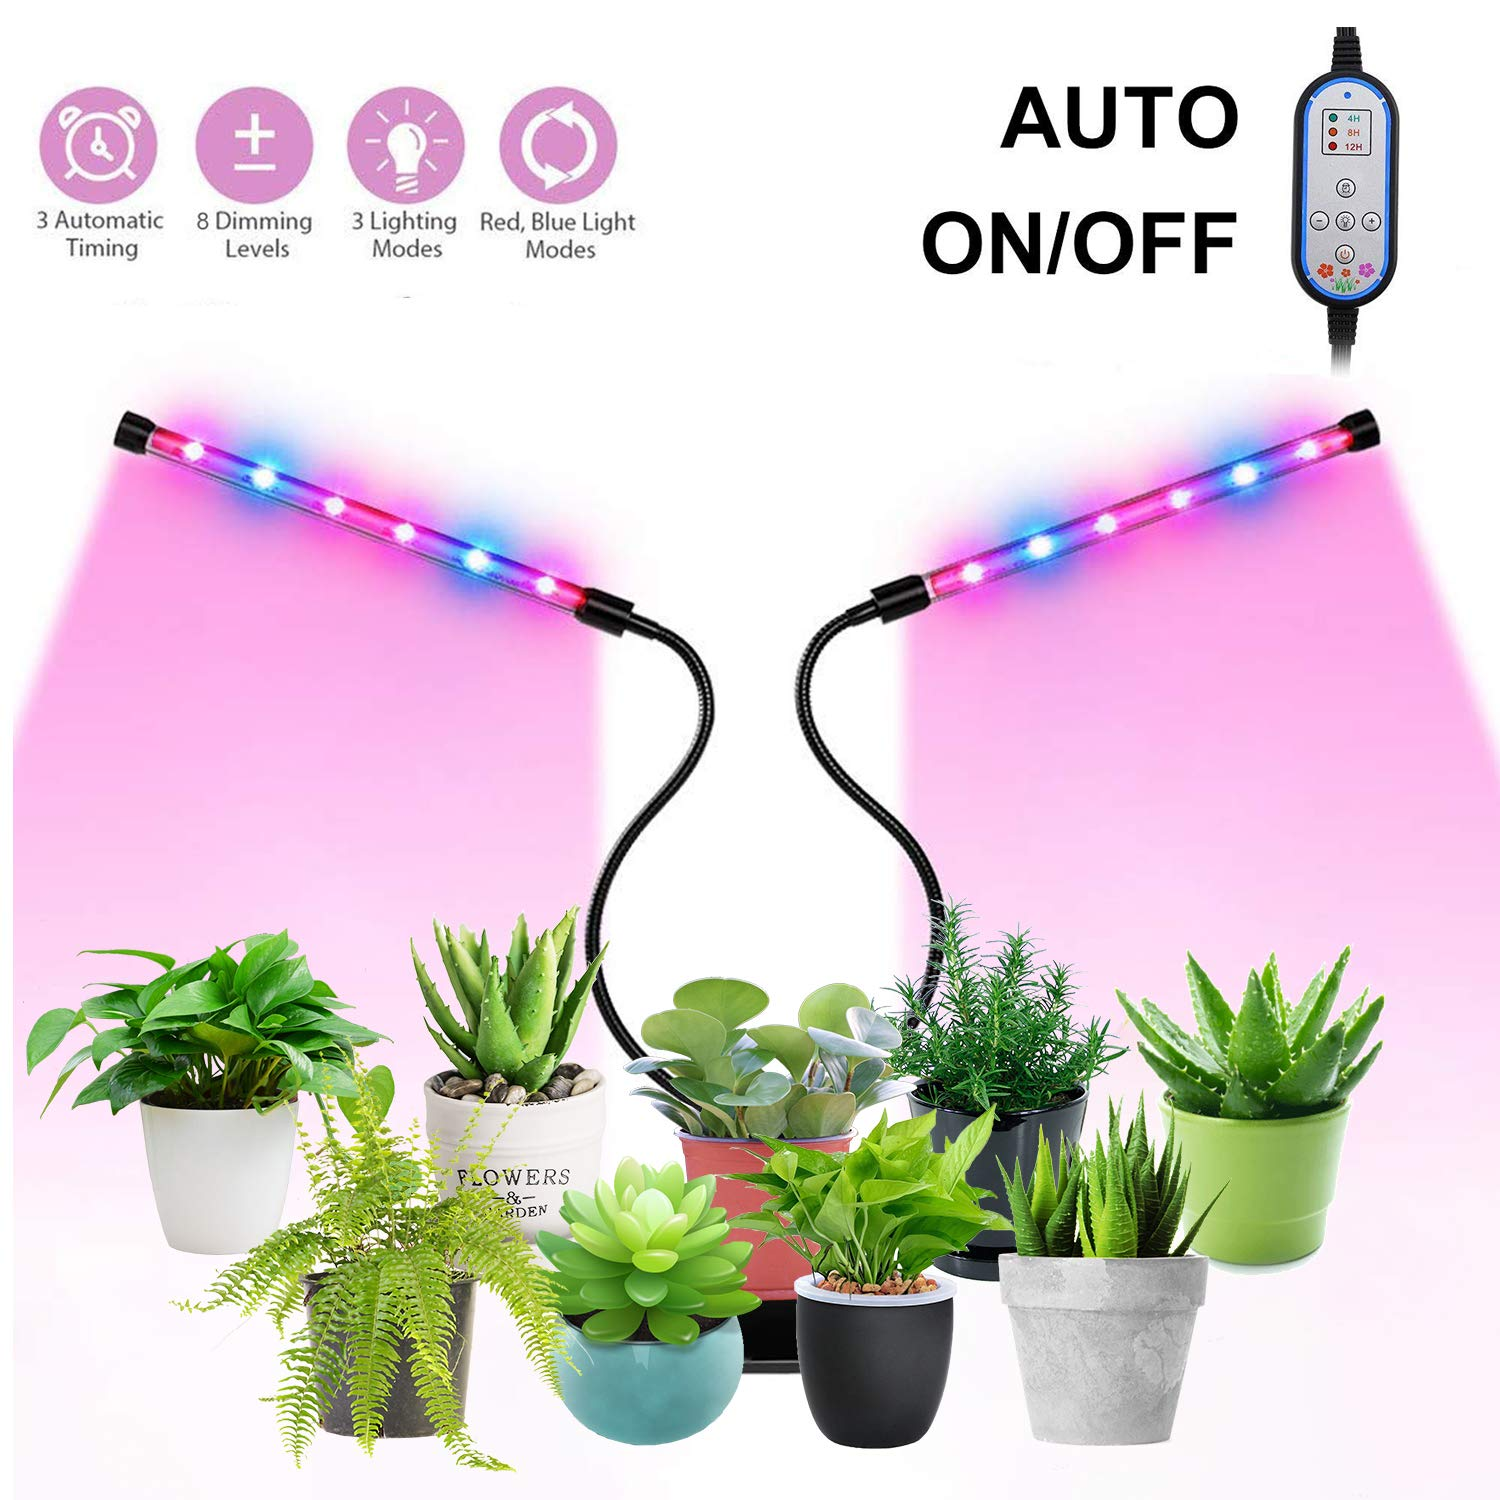 Plant Grow Lights, 24W Grow Light for Indoor Plants, Auto Turn ON&Off Every Day, 8 Dimmable Levels,4/8/12H Memory Timing, 360°Adjustable Gooseneck for Greenhouse Hydroponics Gardening by Elivern